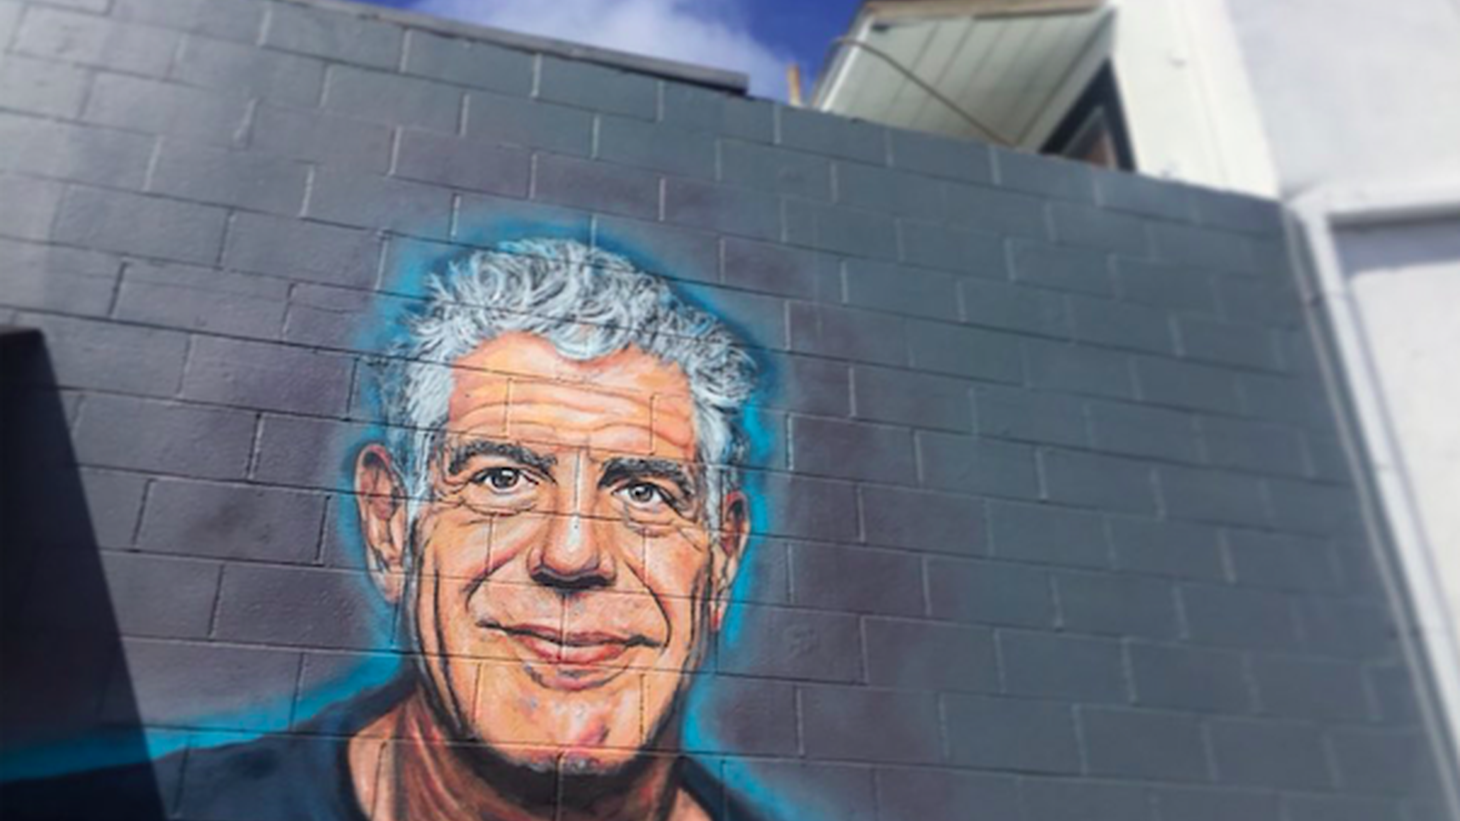 The death of Anthony Bourdain is a loss felt around the world. His nomadic spirit redefined how many of us ate and traveled.